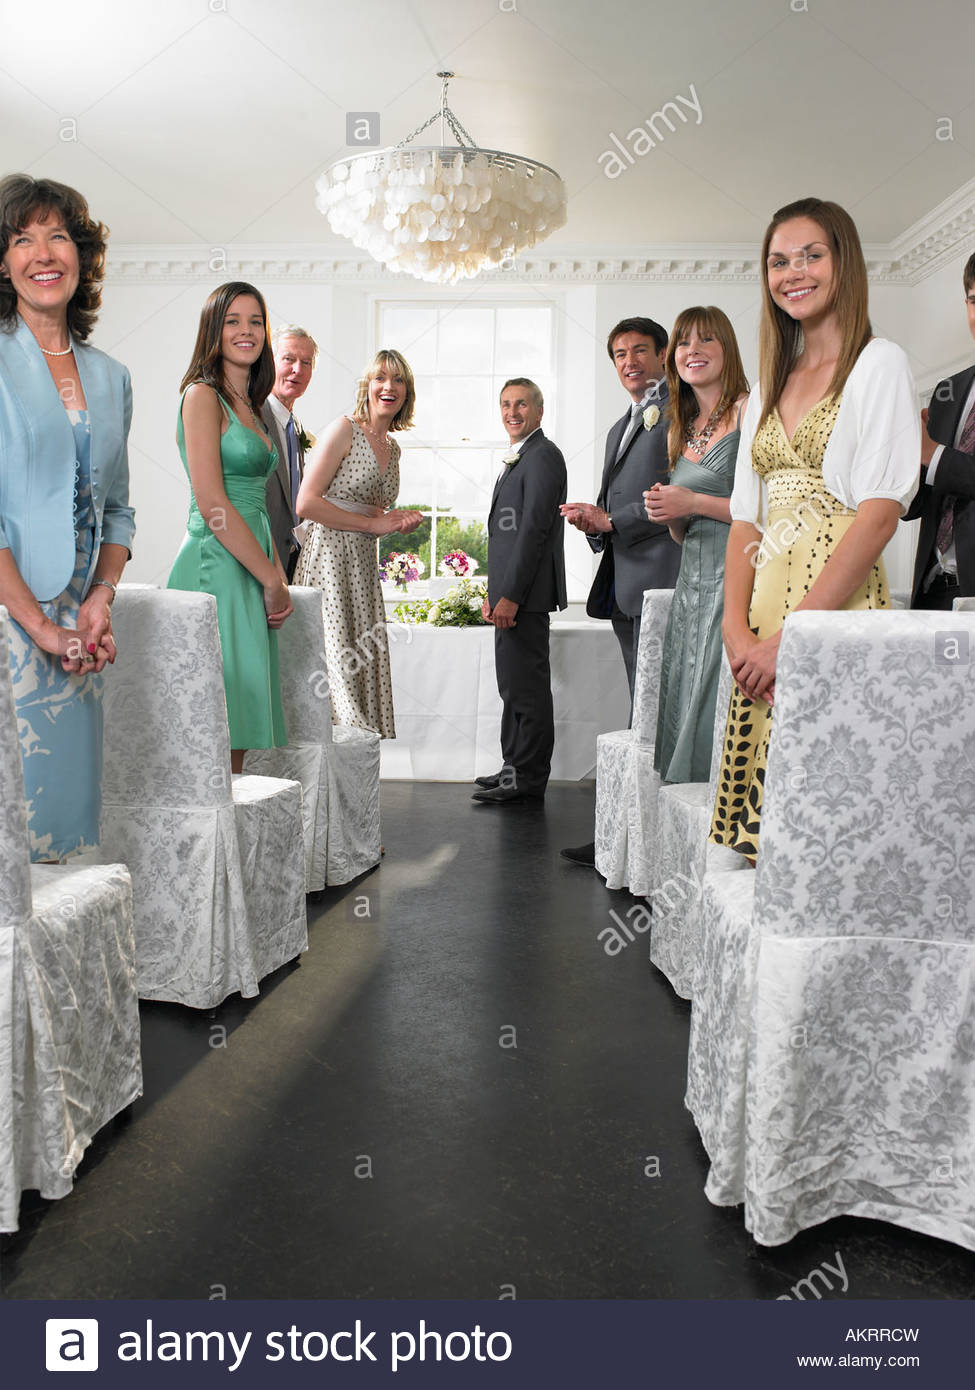 Wedding guests looking down aisle - Stock Image